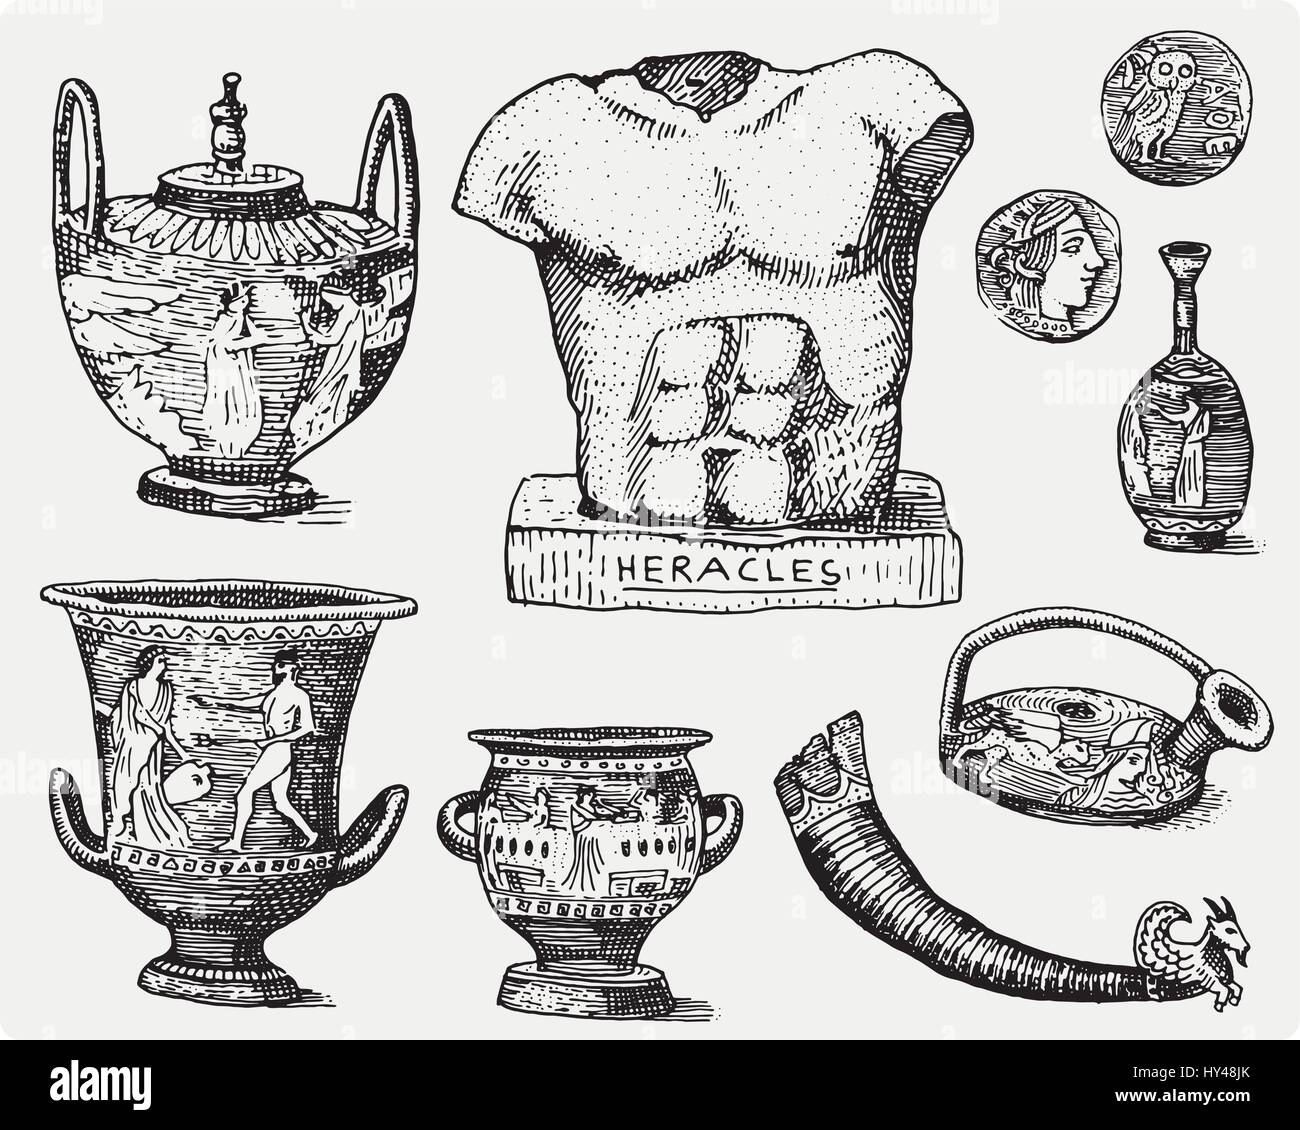 Ancient greece antique symbols greek coins heracles sculpture ancient greece antique symbols greek coins heracles sculpture anphora vintage engraved hand drawn in sketch or wood cut style old looking retro biocorpaavc